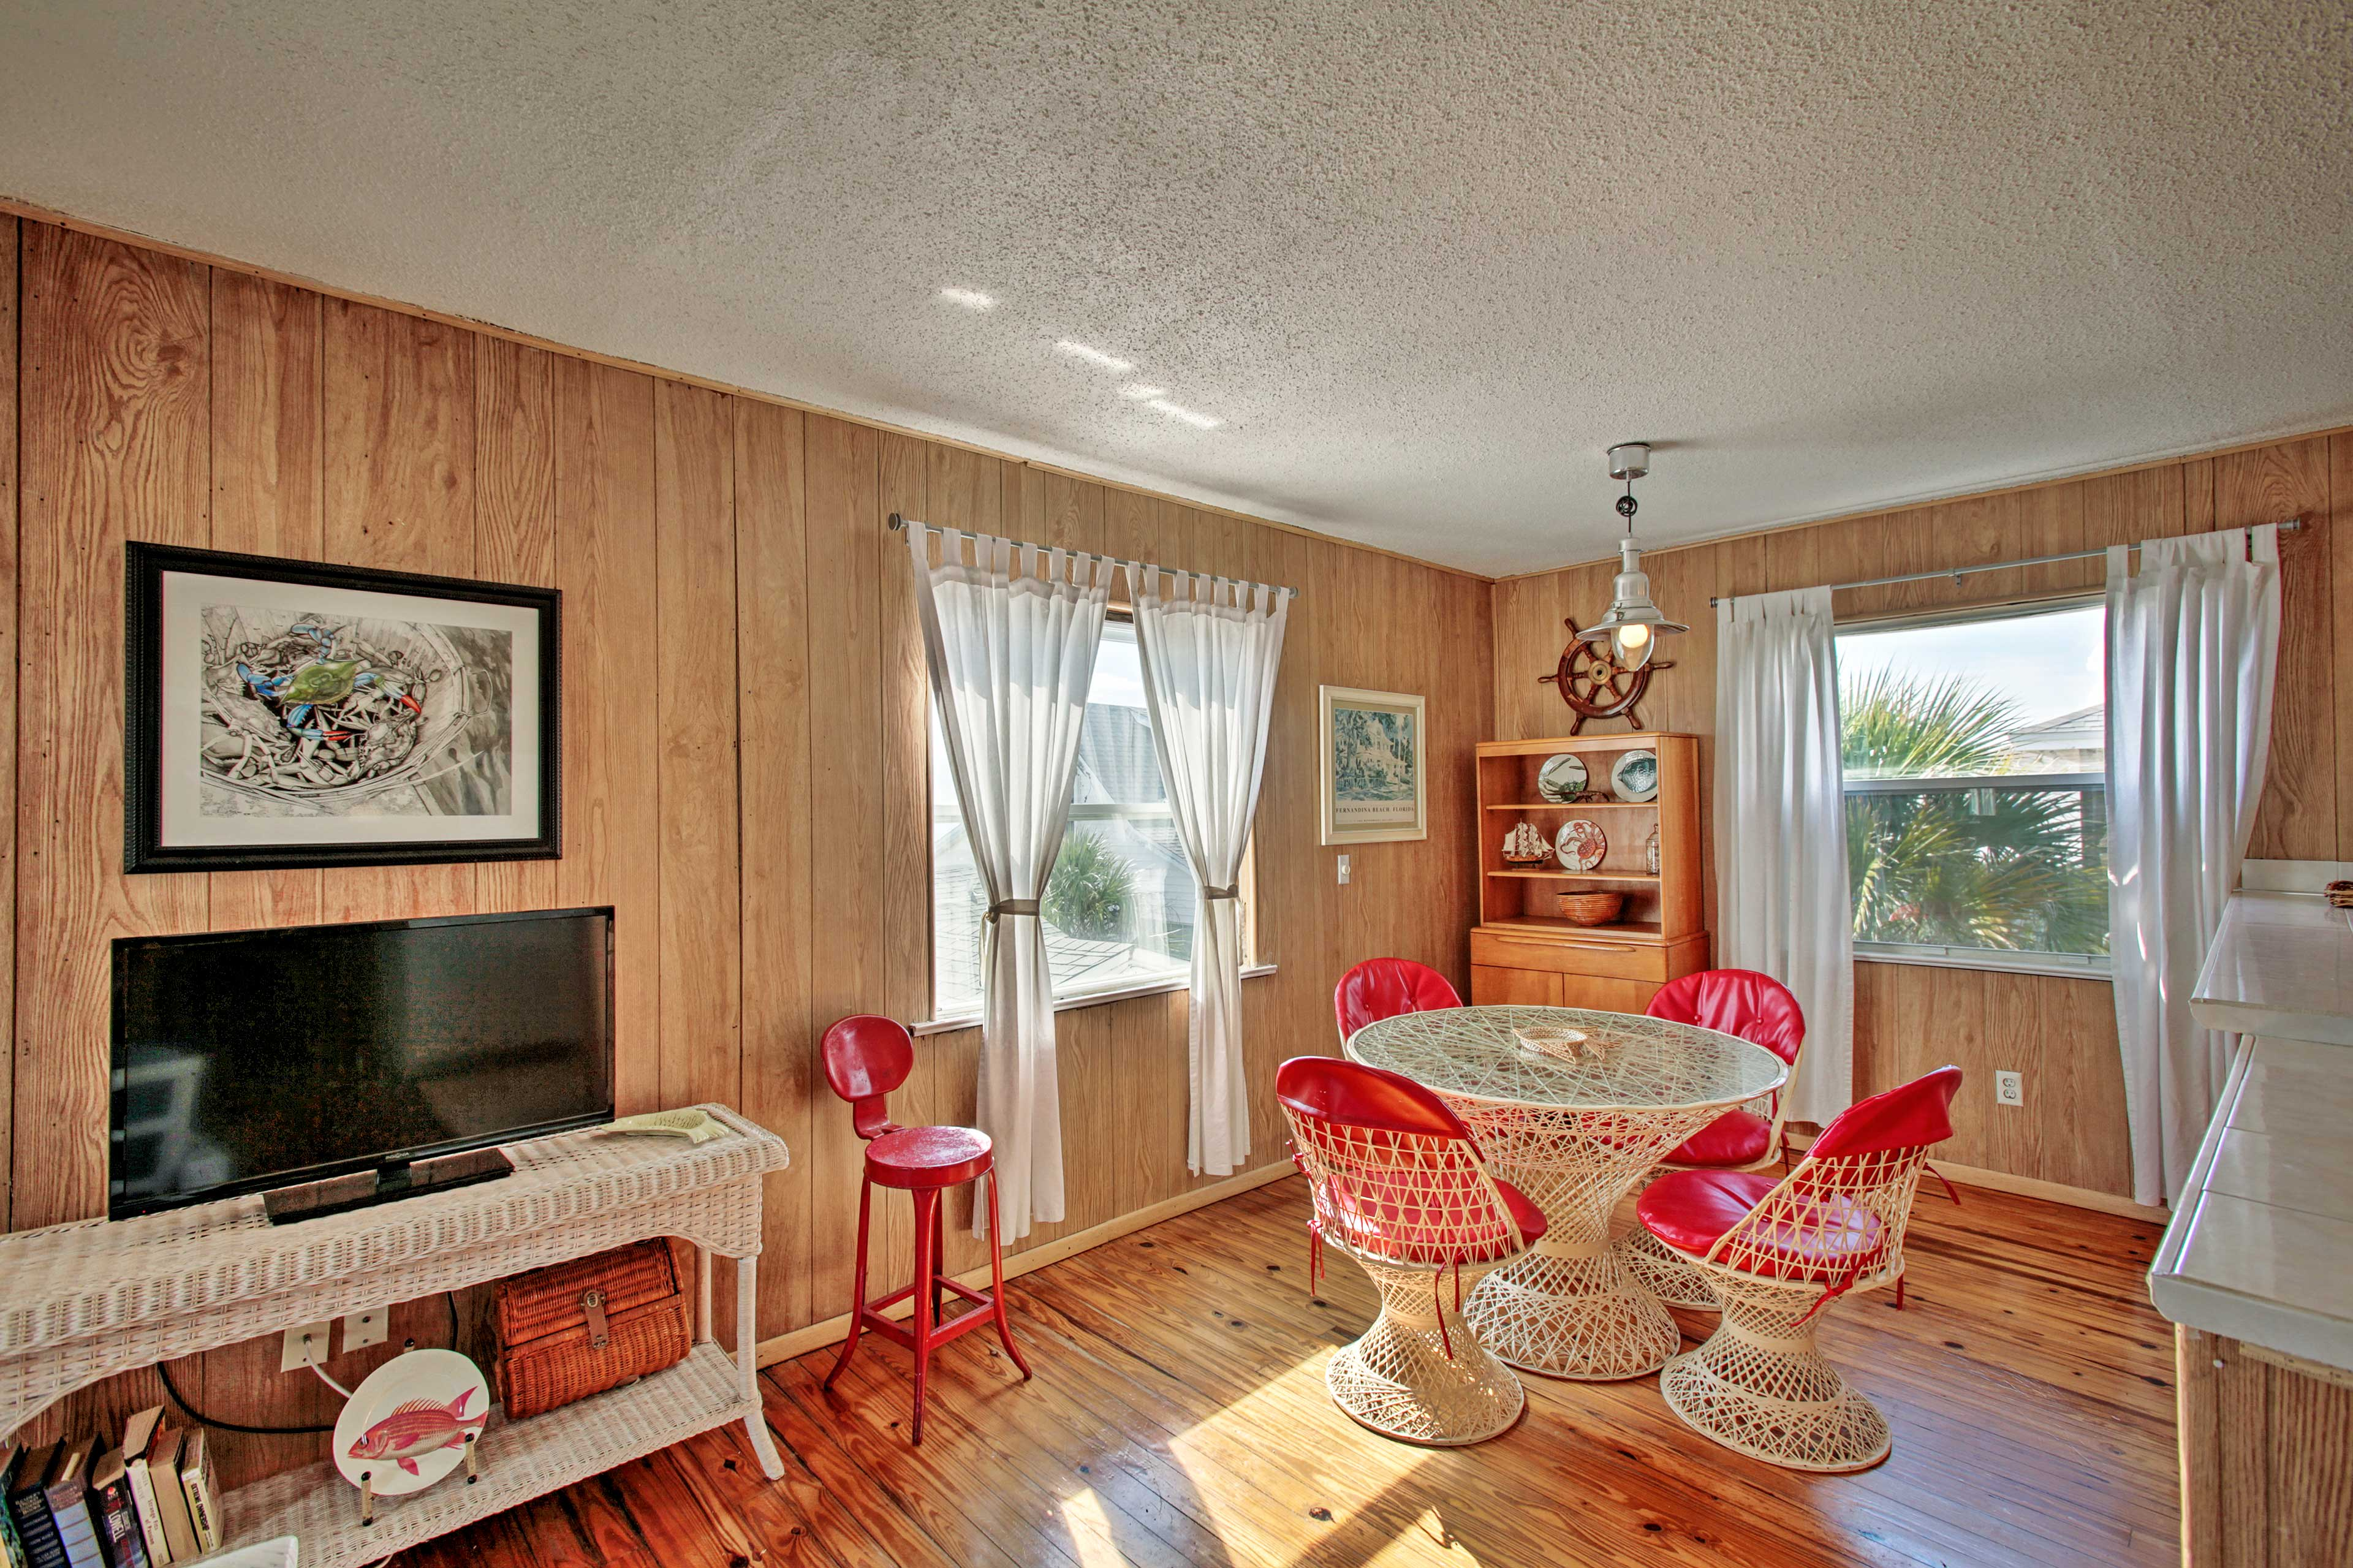 Take a break from the beach inside the air-conditioned home.